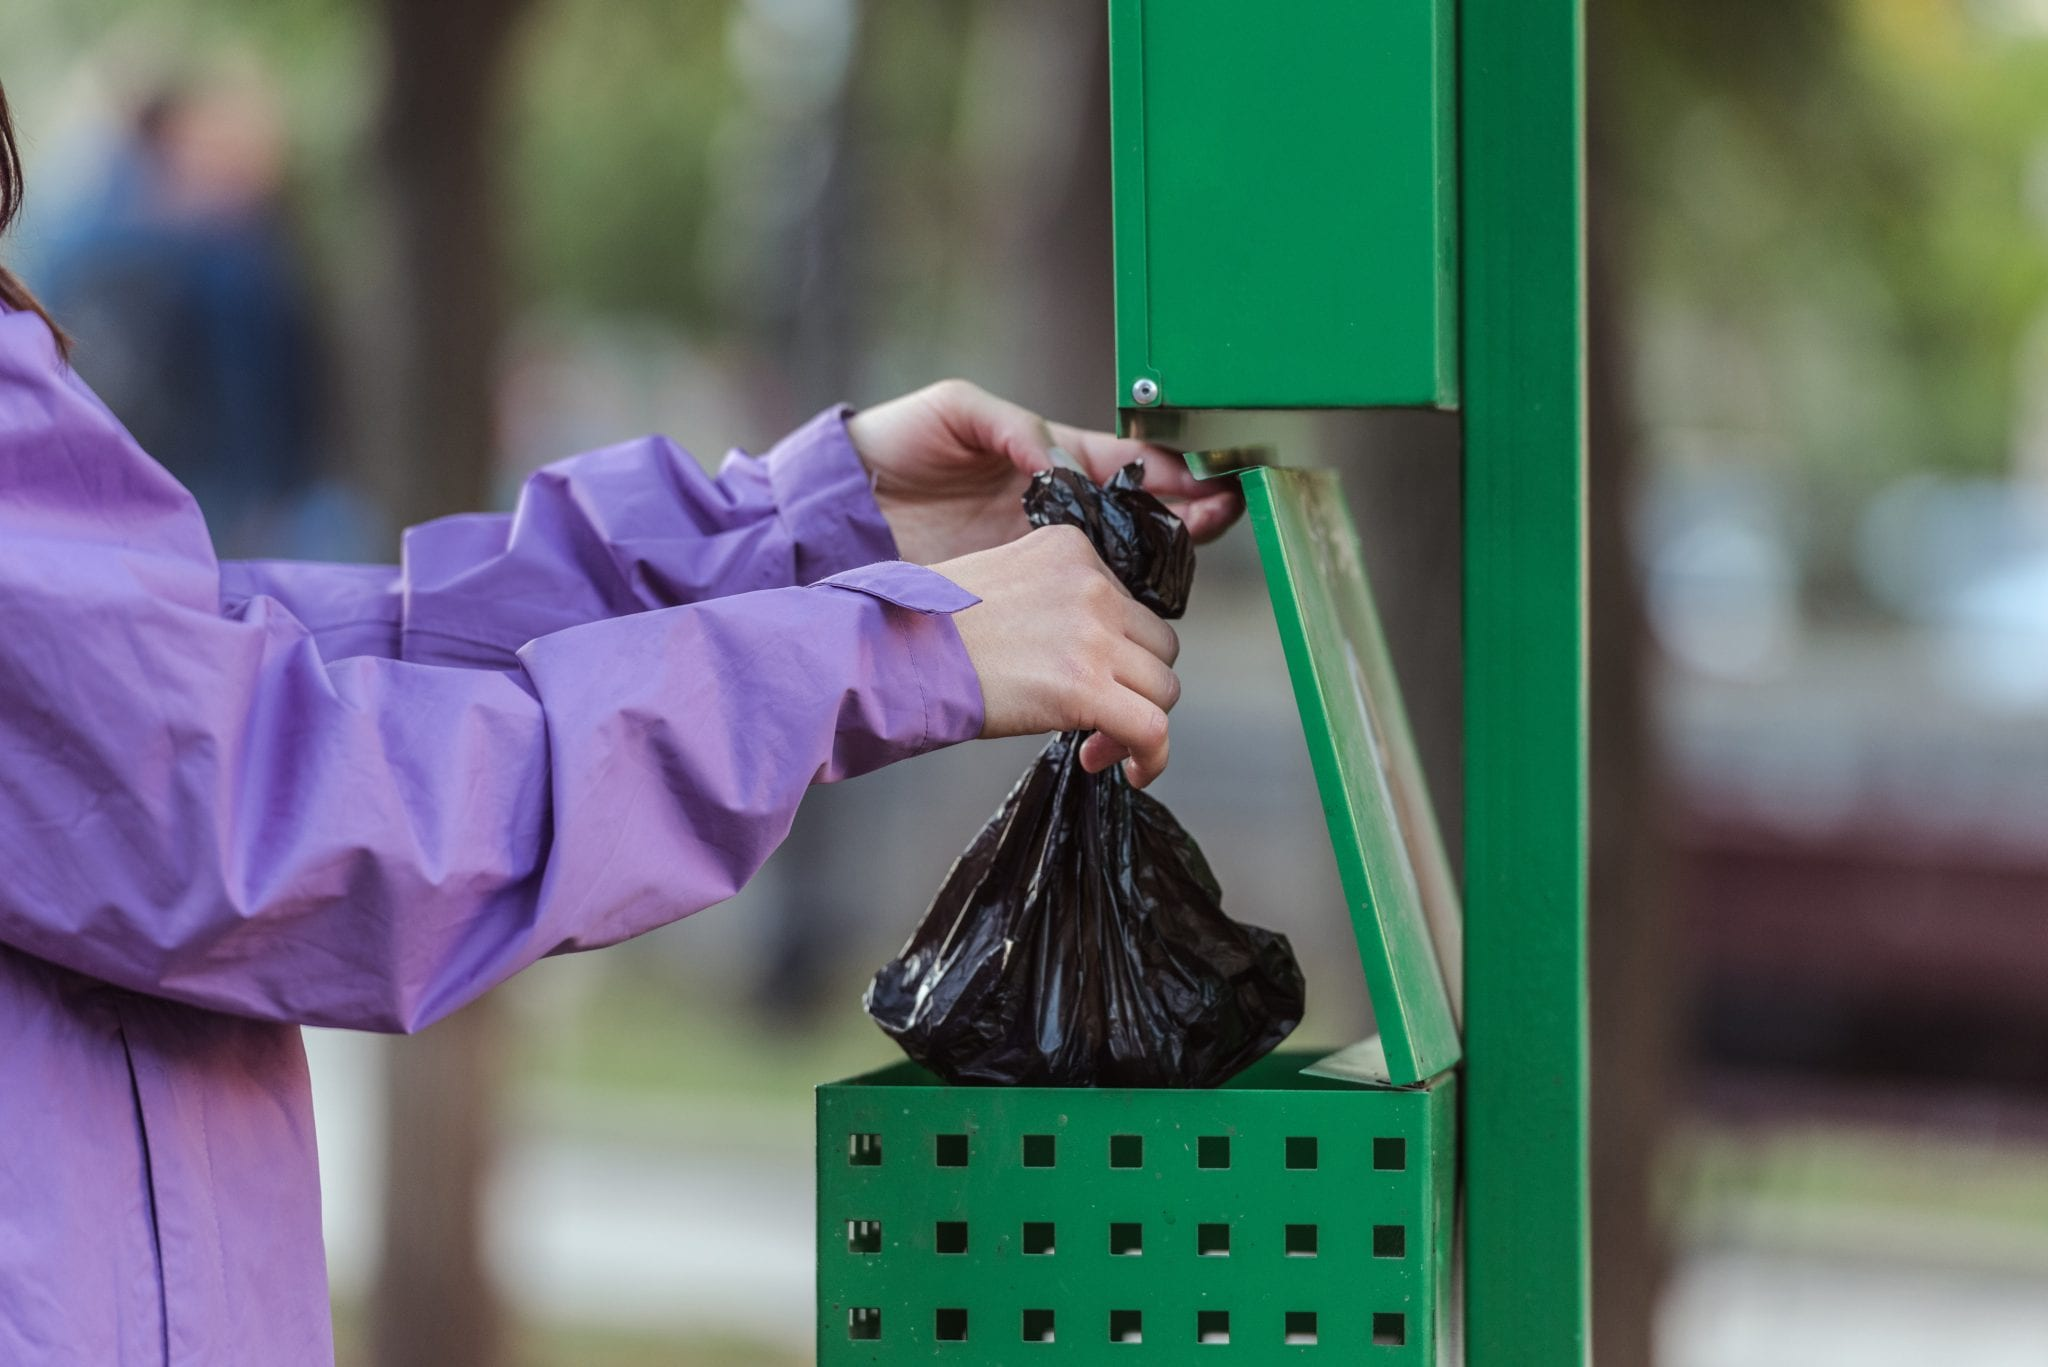 cropped shot of woman putting bag in trash can in park, cleaning after pet concept